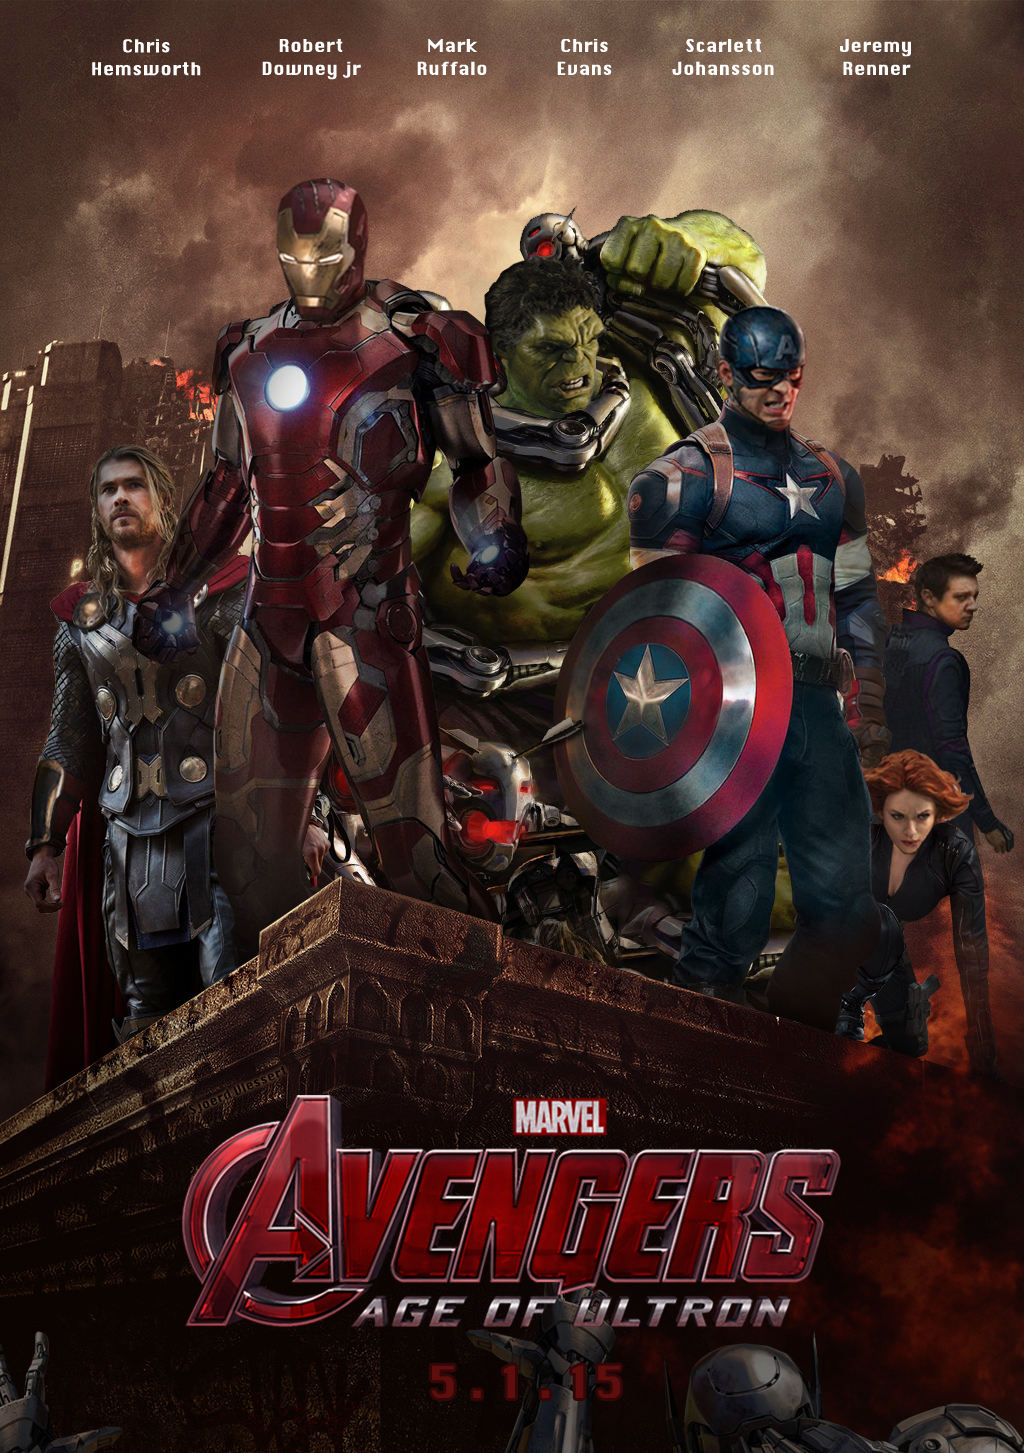 Avengers age of ultron poster the avengers age of ultron 37434941 1024